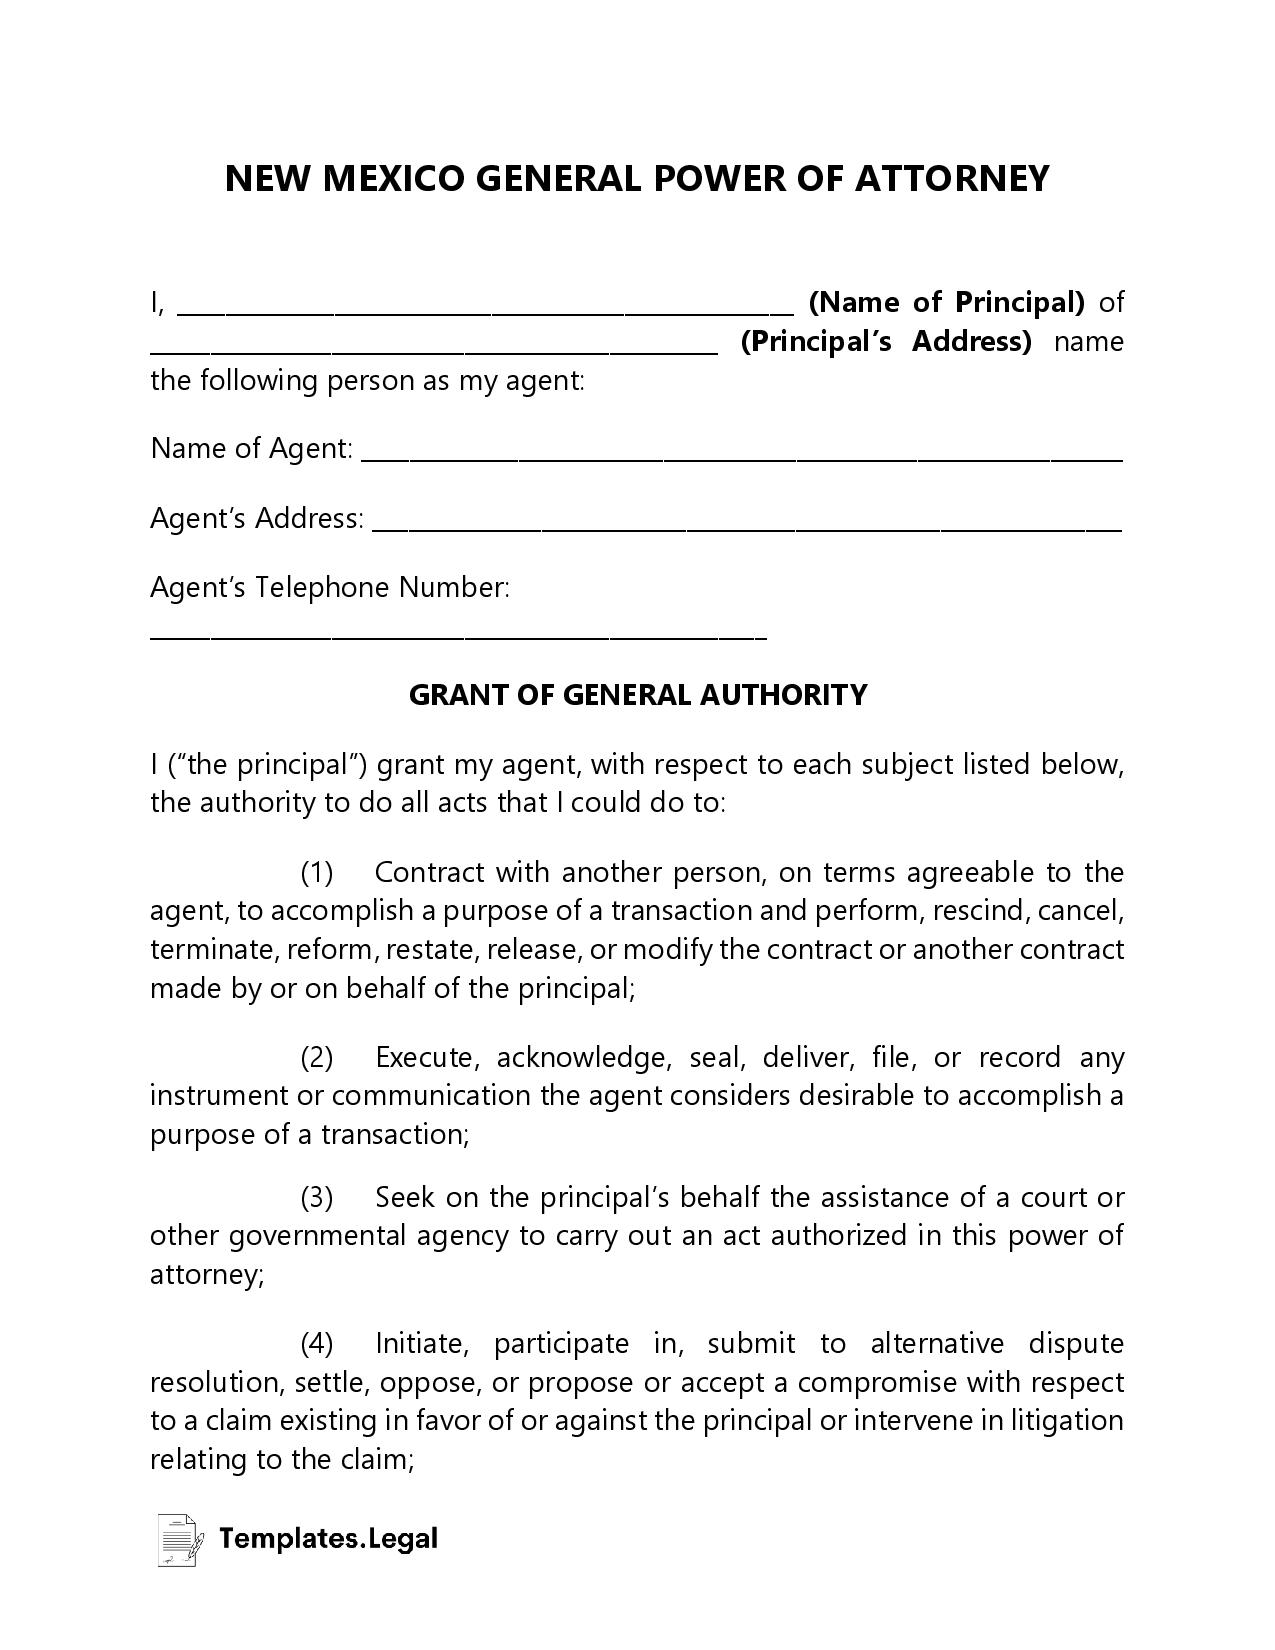 New Mexico General Power of Attorney - Templates.Legal